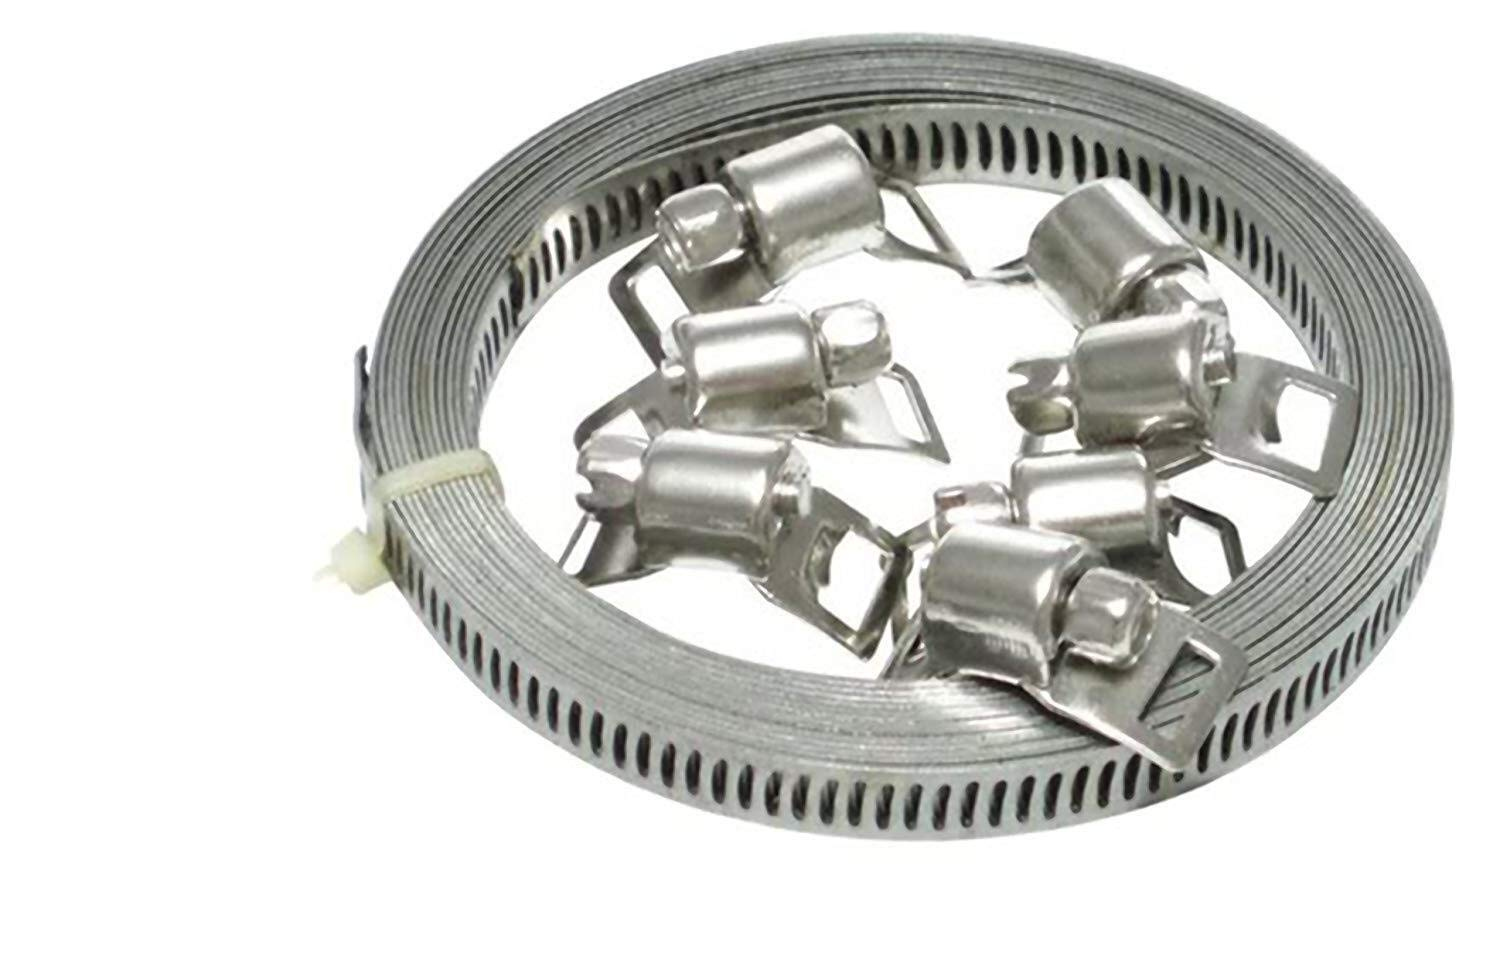 Fascette stringitubo endlos Spann nastri in acciaio inox W2/ 12,7/ mm 3/ meter con 6/ Serrature